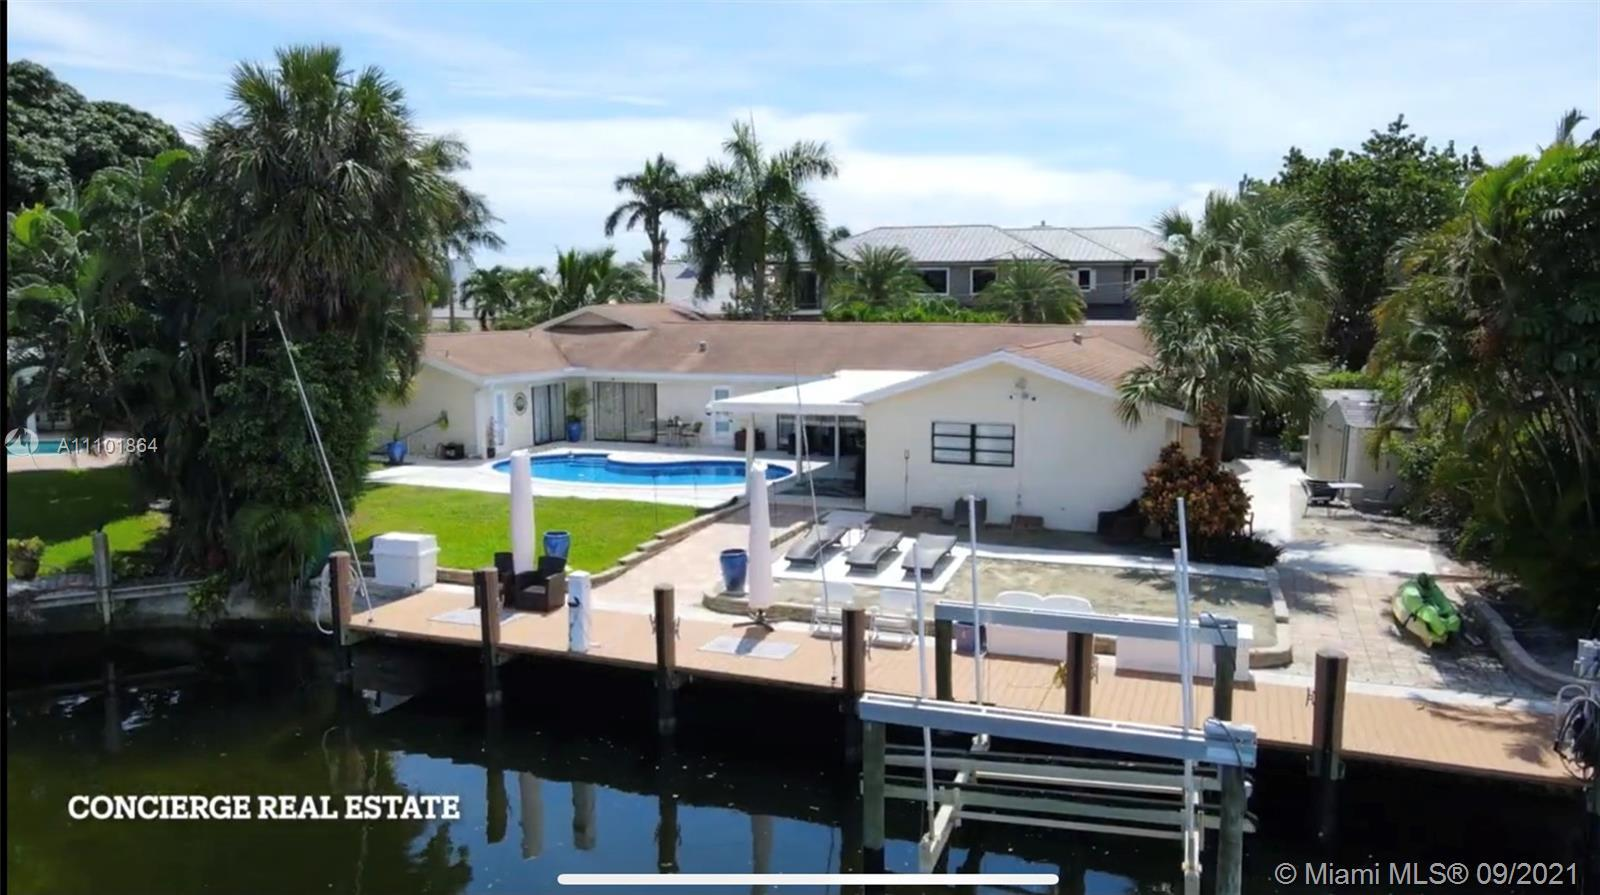 Location @ Its best Boat Lovers in LAKE PLACID @ LIGHTHOUSE POINT. This 5BR/4B home is located on a